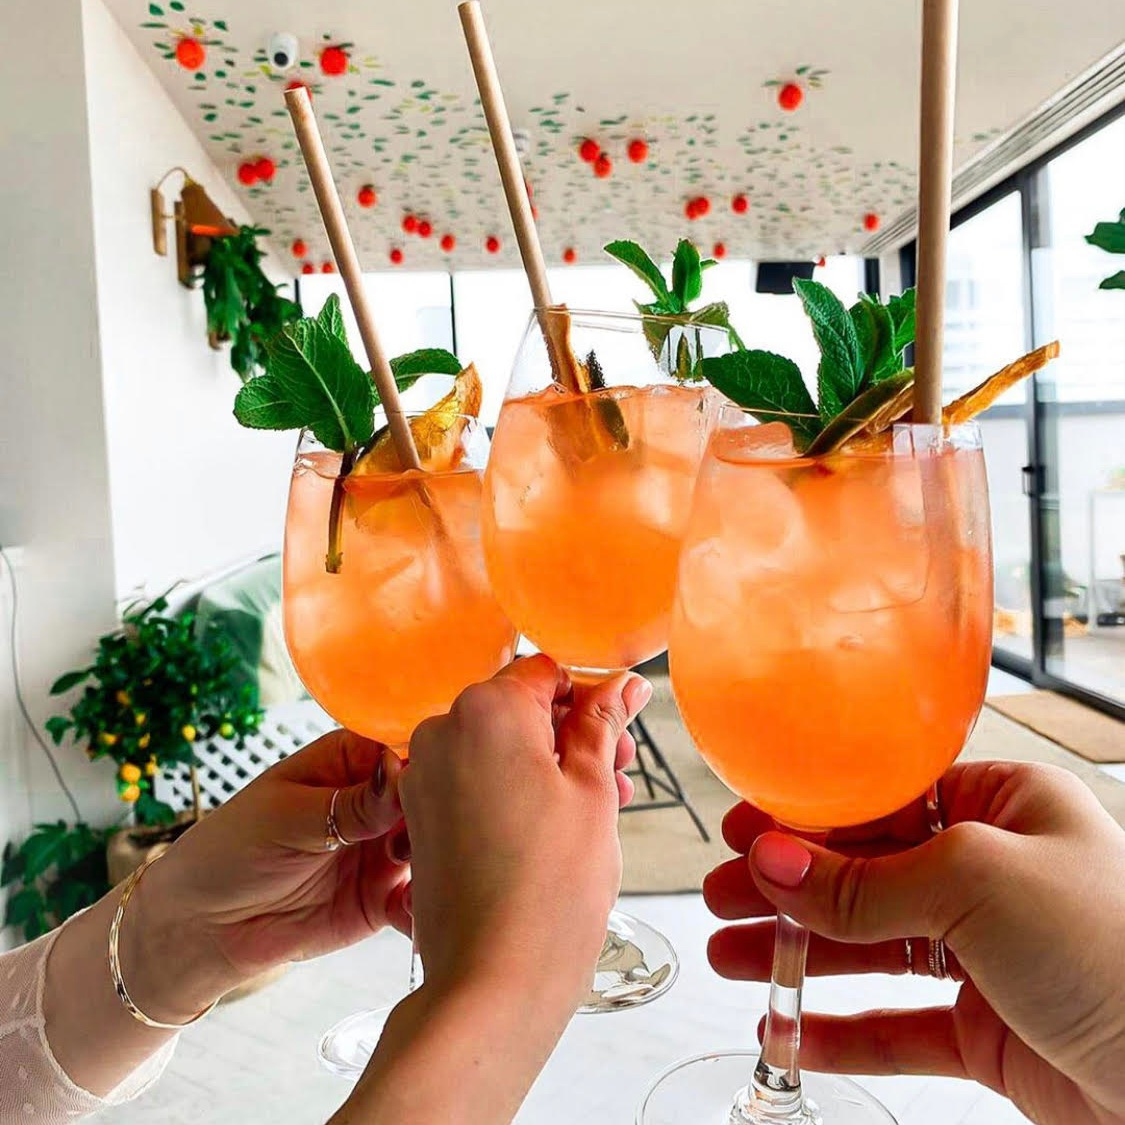 FERRAGOSTO FESTIVAL - Friday 16th - Saturday 17th AugustMarking midsummer's Italian holiday Ferragosto, we're celebrating our beloved Italian spritz for the entire weekend at our penultimate summer party. Aperol spritzes in excess, Italian snacks and acoustic music for the evening.